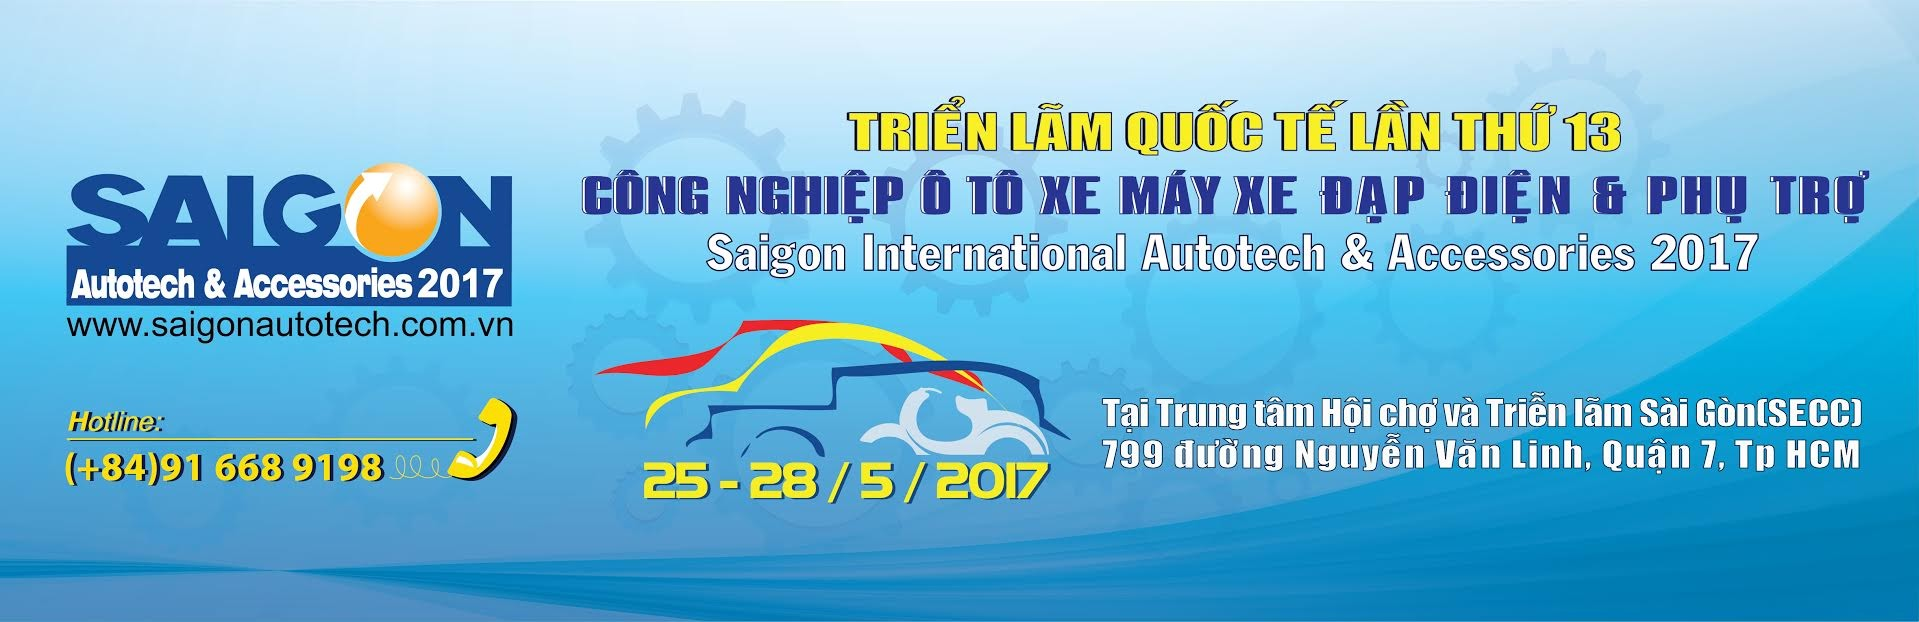 The 13th SAIGON AUTOTECH & ACCESSORIES 2017